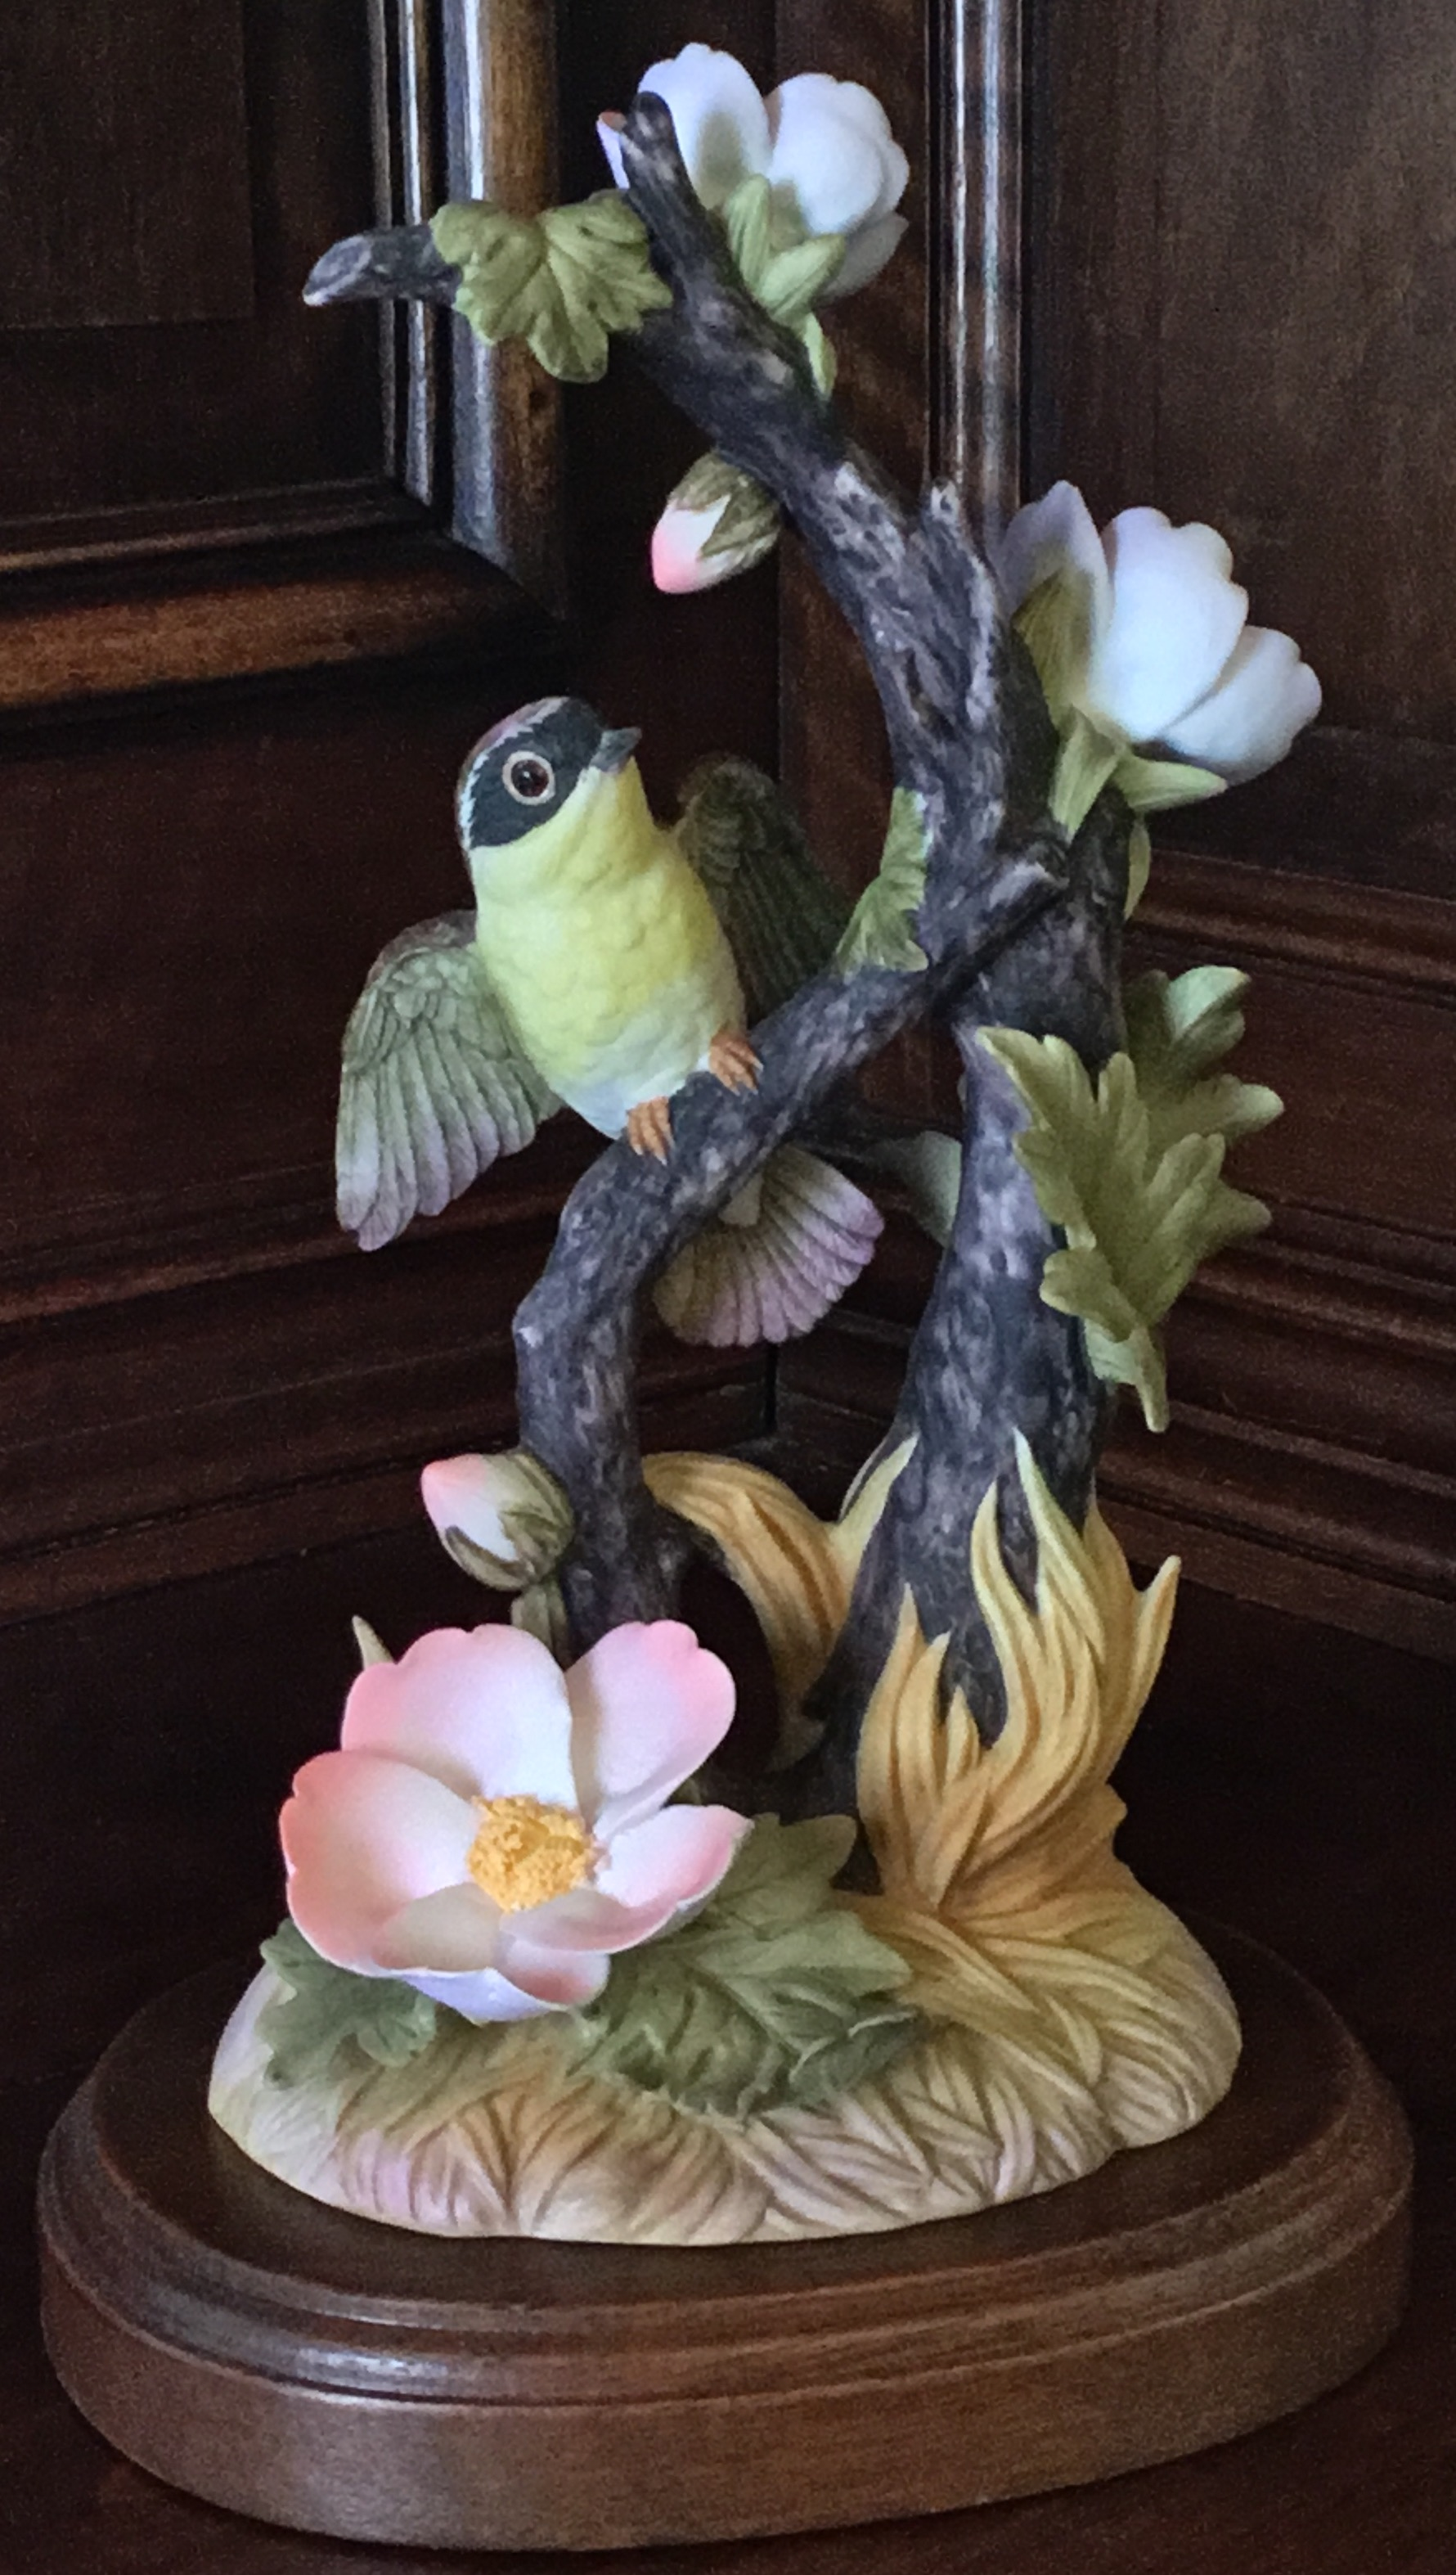 Gallery Birds by Gorham, Yellow Throat with Anemone